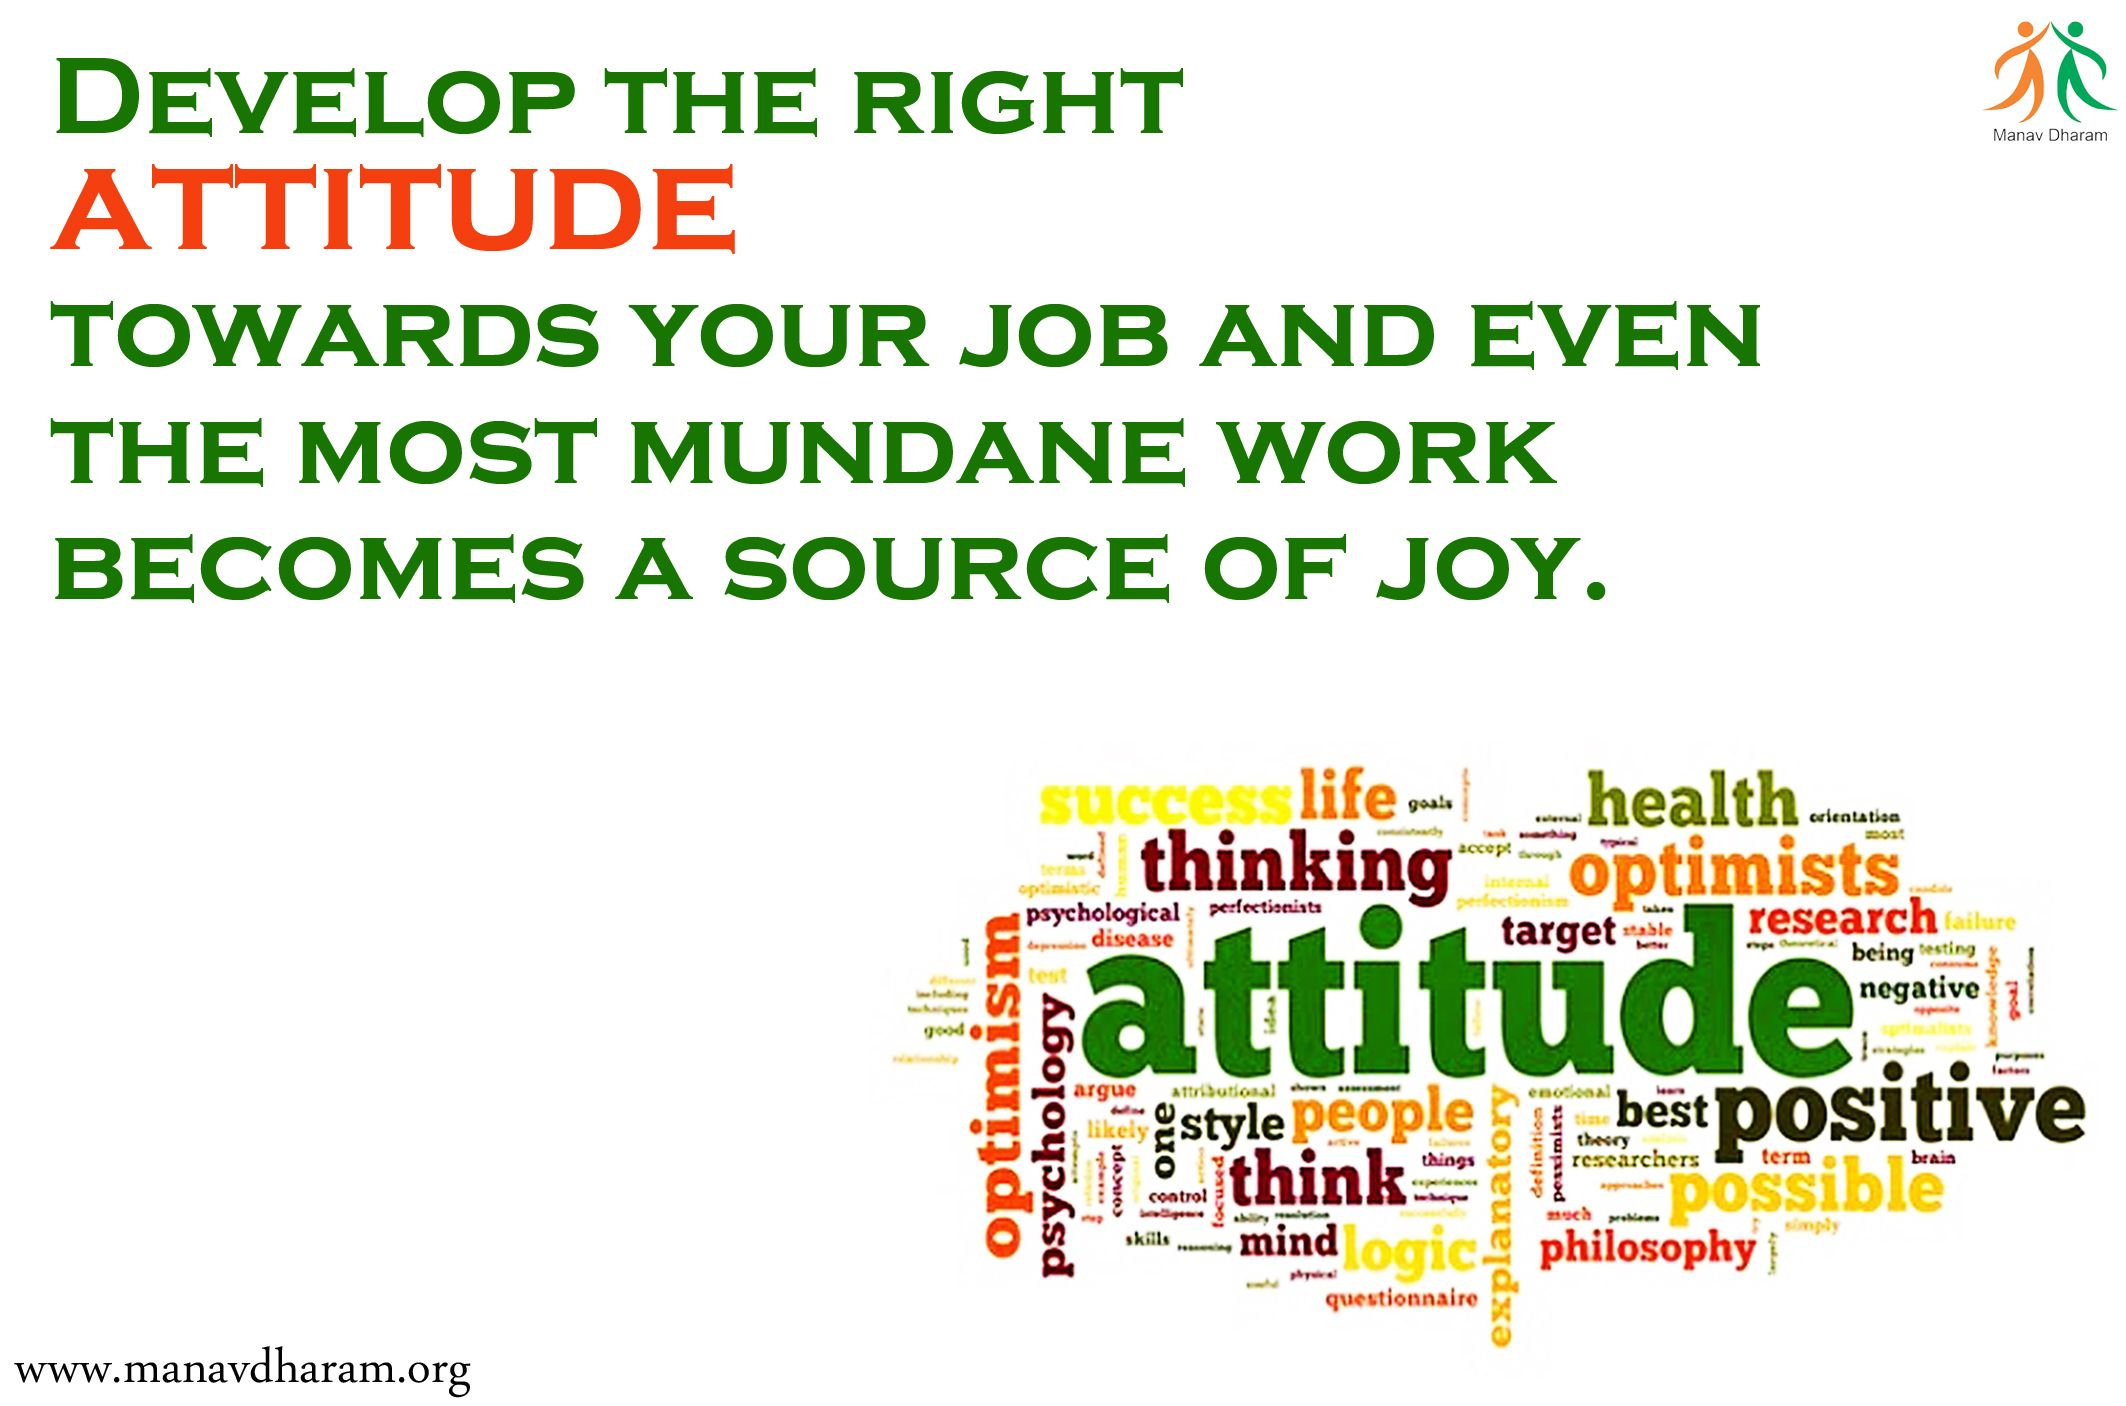 develop the right attitude towards your job and even the most mundane work becomes a source of